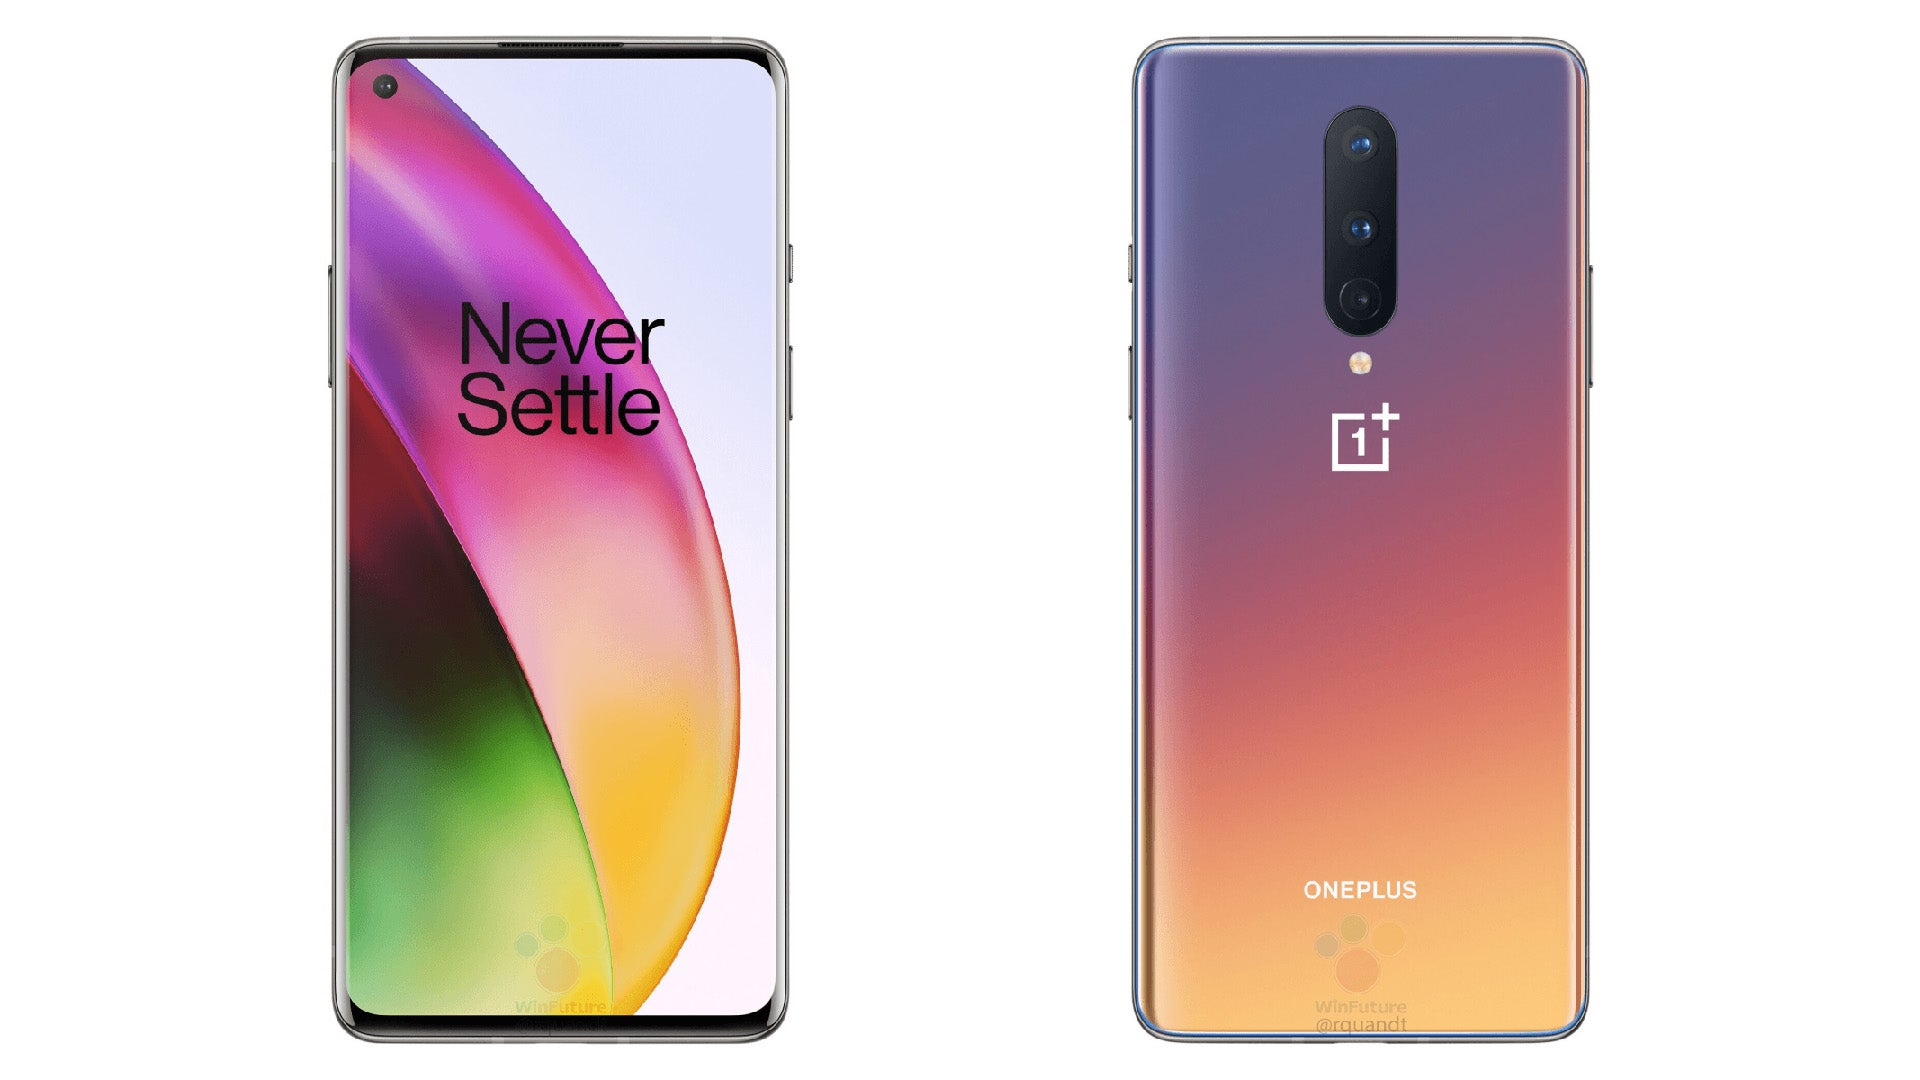 Big Leak Reveals The OnePlus 8's Design And Specs Ahead Of Launch